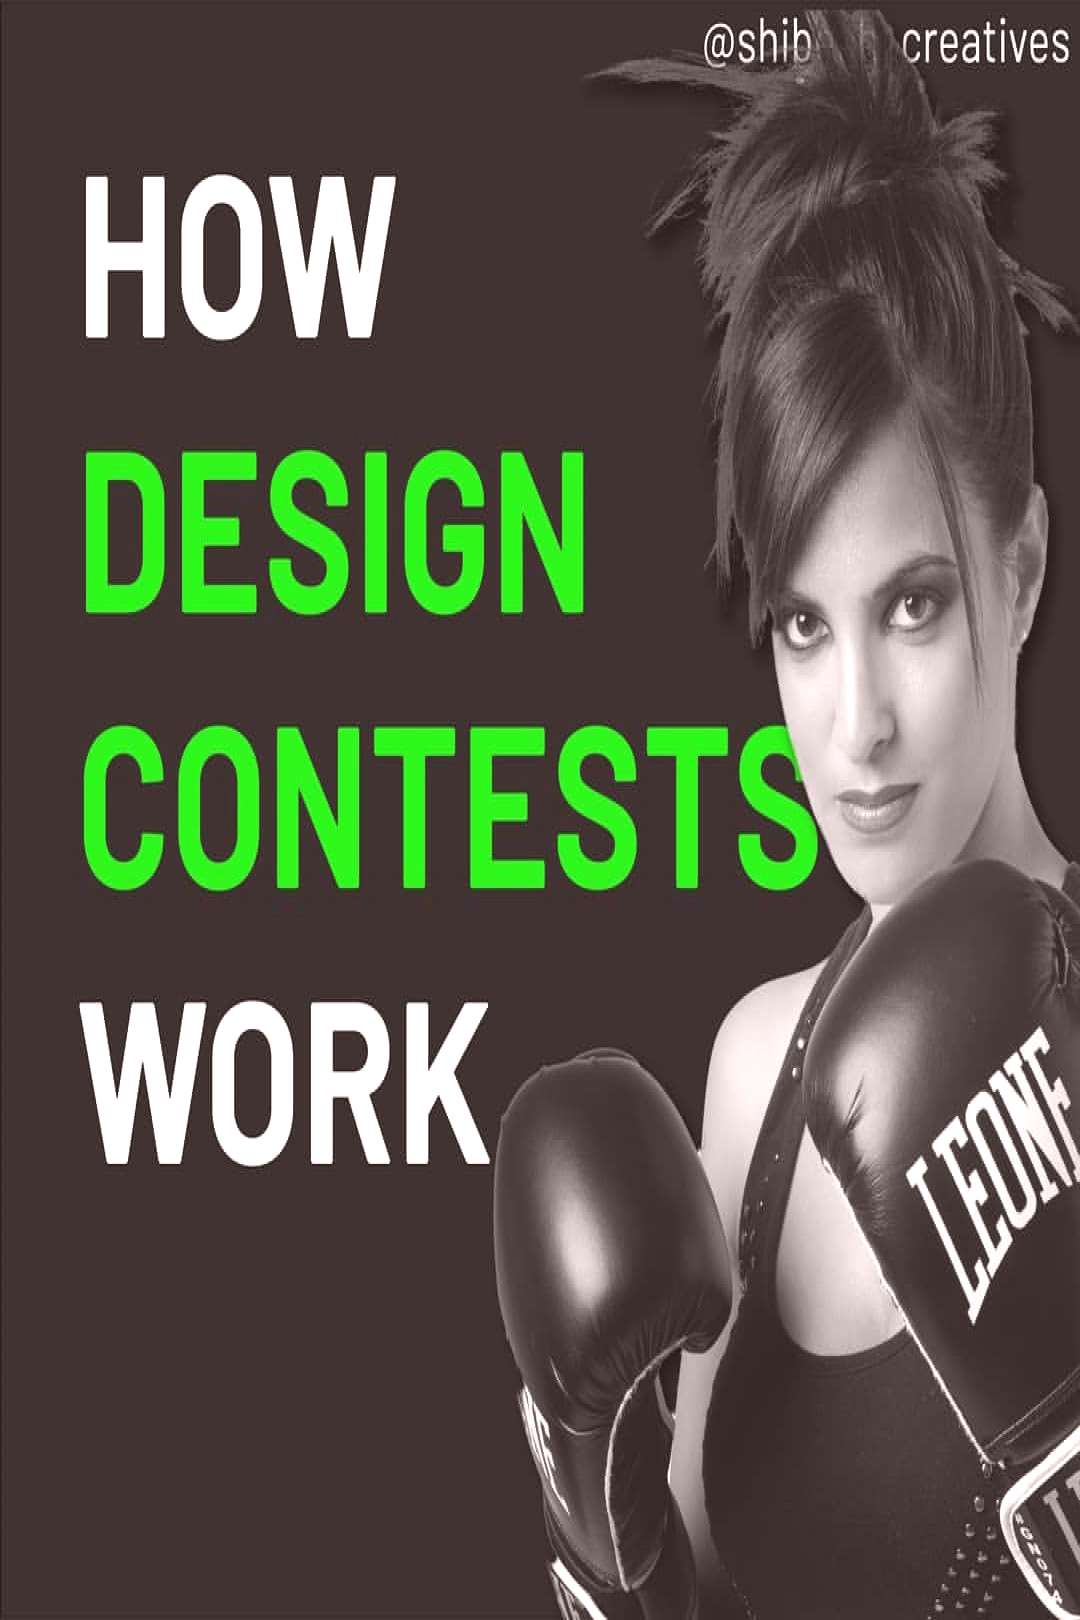 Hows your weekend going fellas! This is a design contest guide f